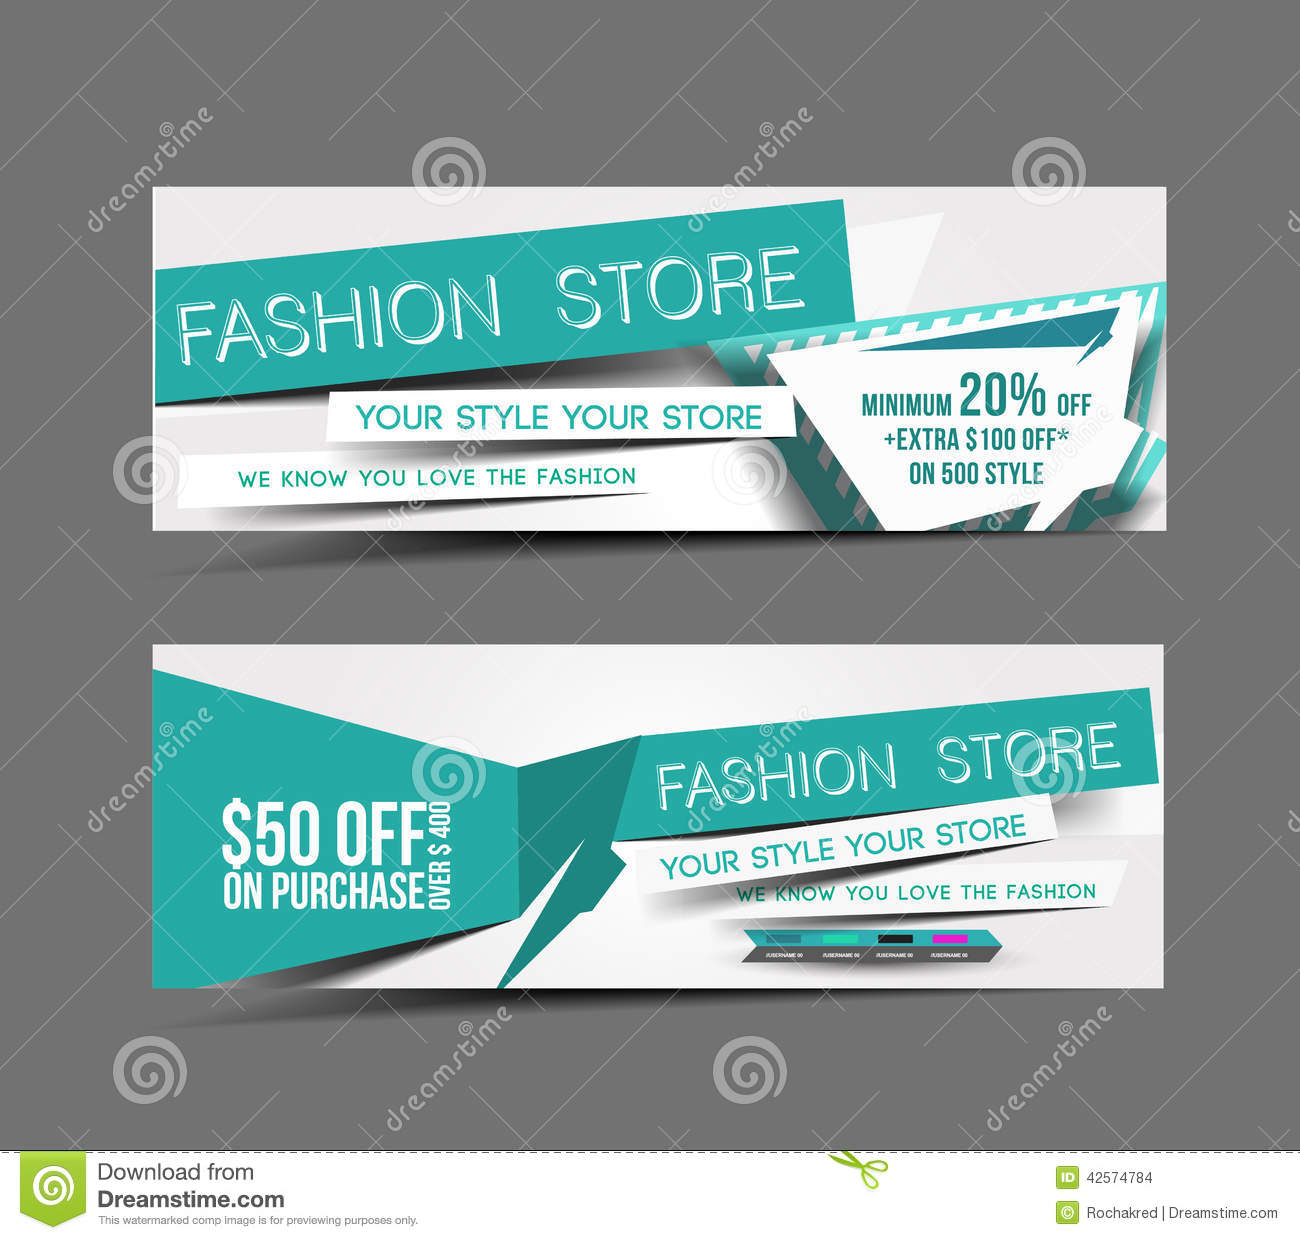 Fashion Store Web Banner Stock Vector Illustration Of Background